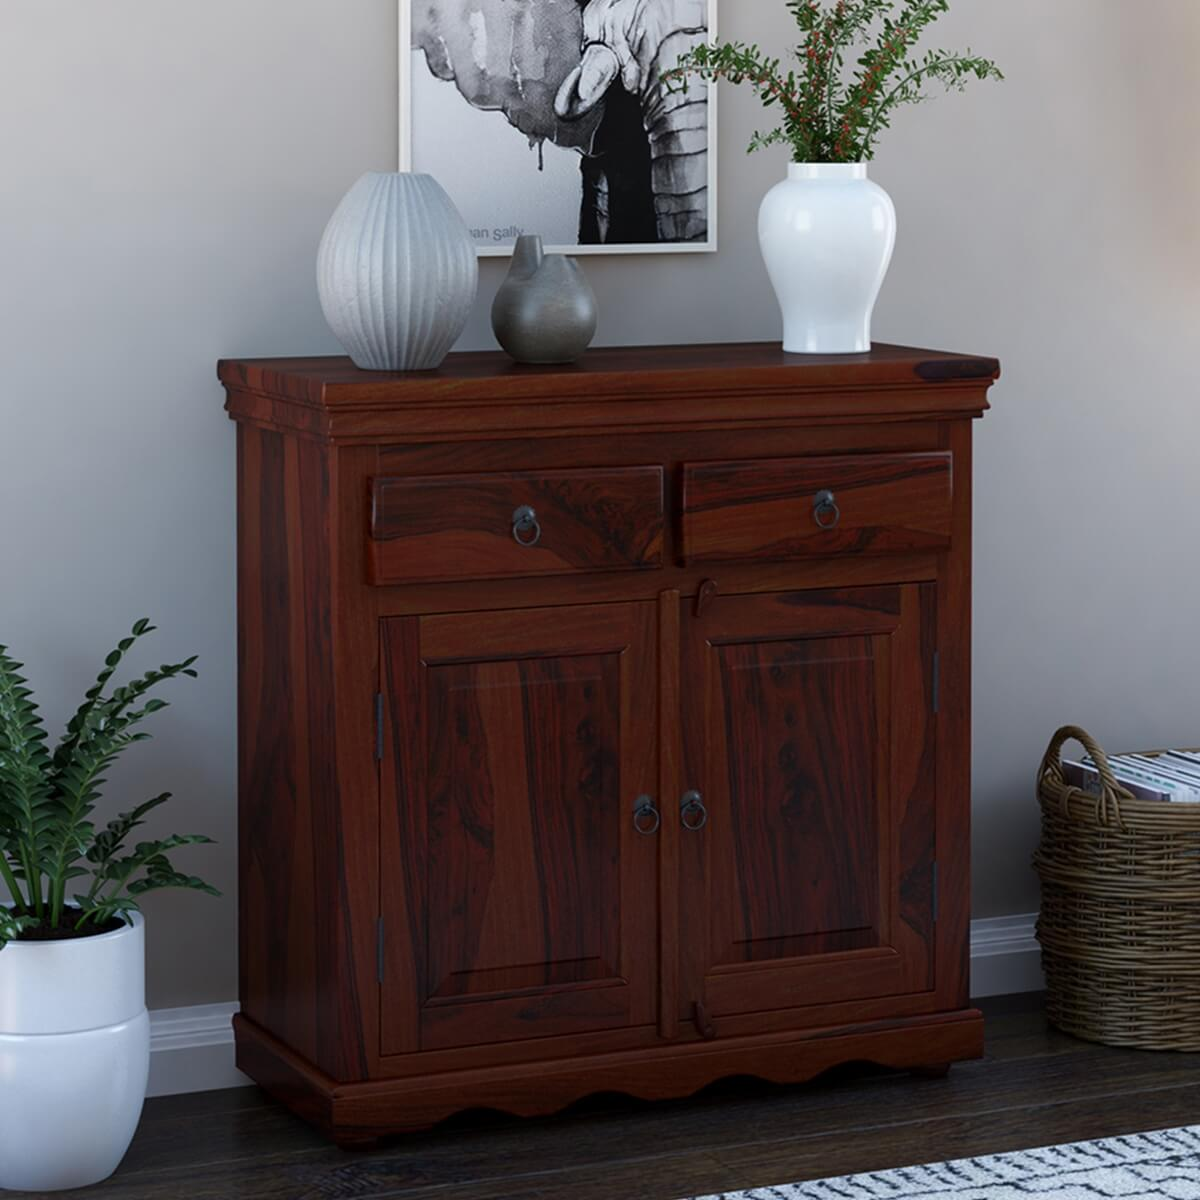 Tampa Rustic Solid Wood Handmade 2 Drawer Buffet Cabinet : 1886 from www.sierralivingconcepts.com size 1200 x 1200 jpeg 409kB